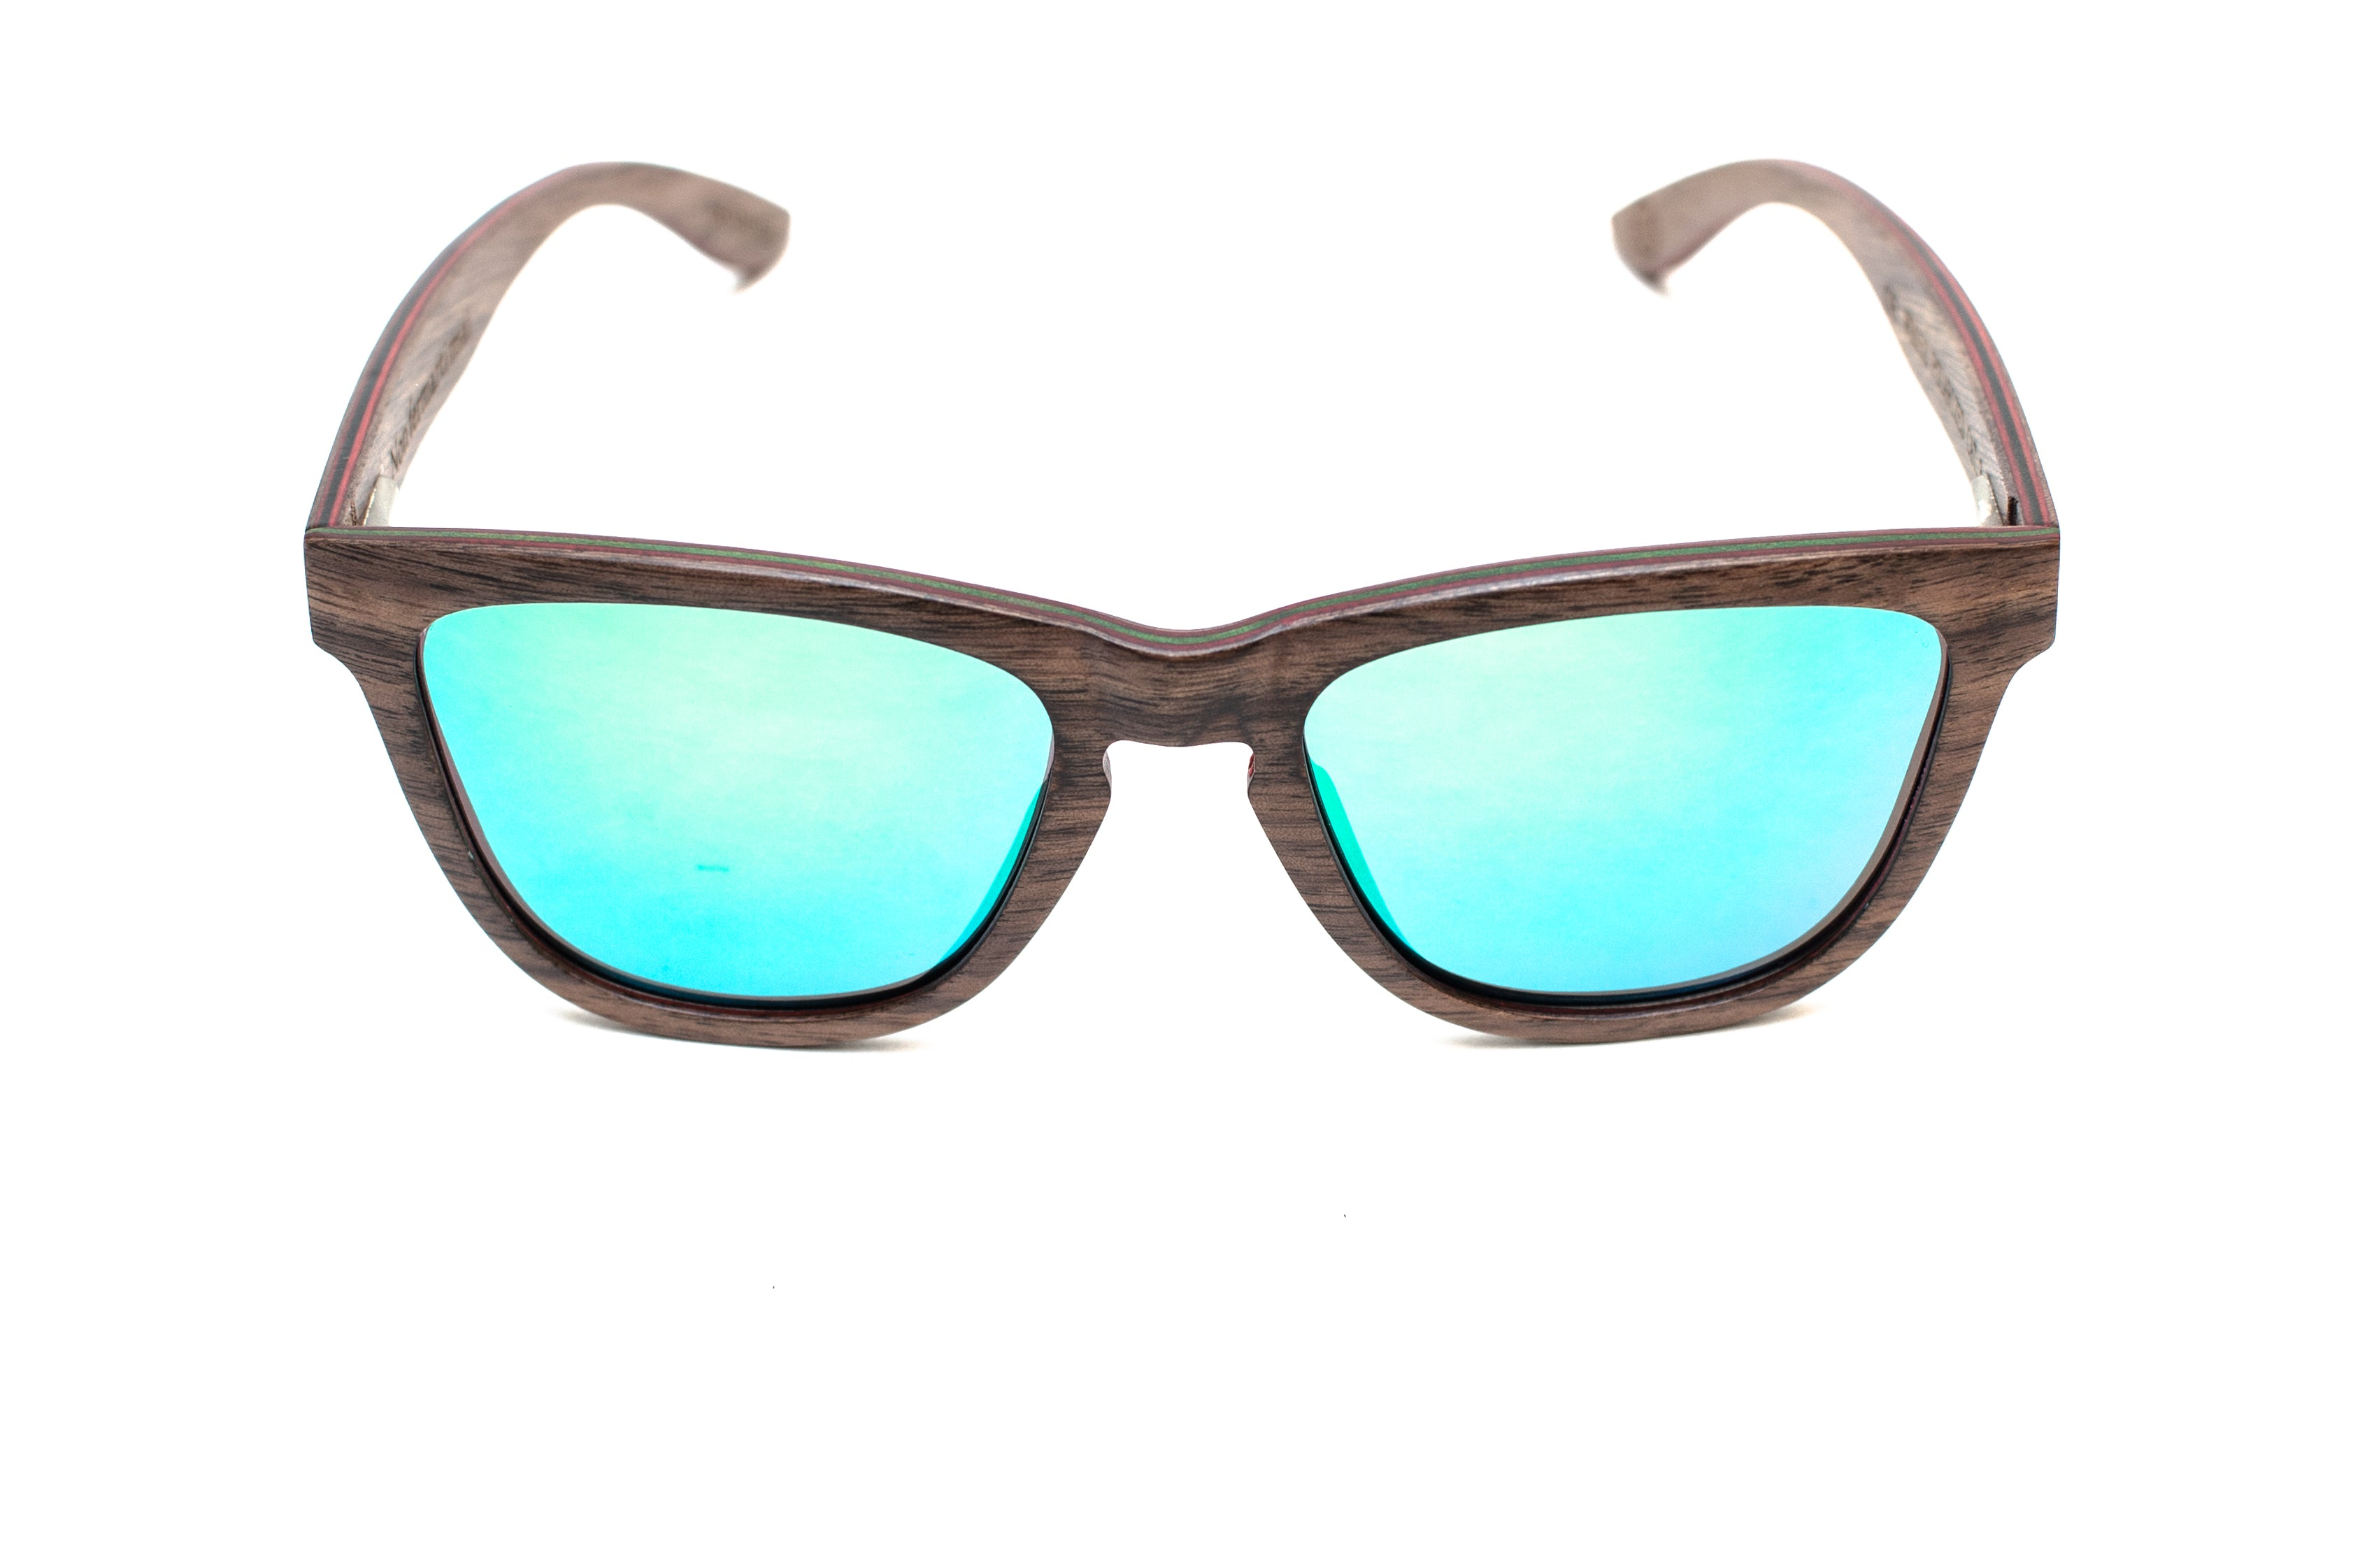 Valentino wooden sunglasses woodhoy